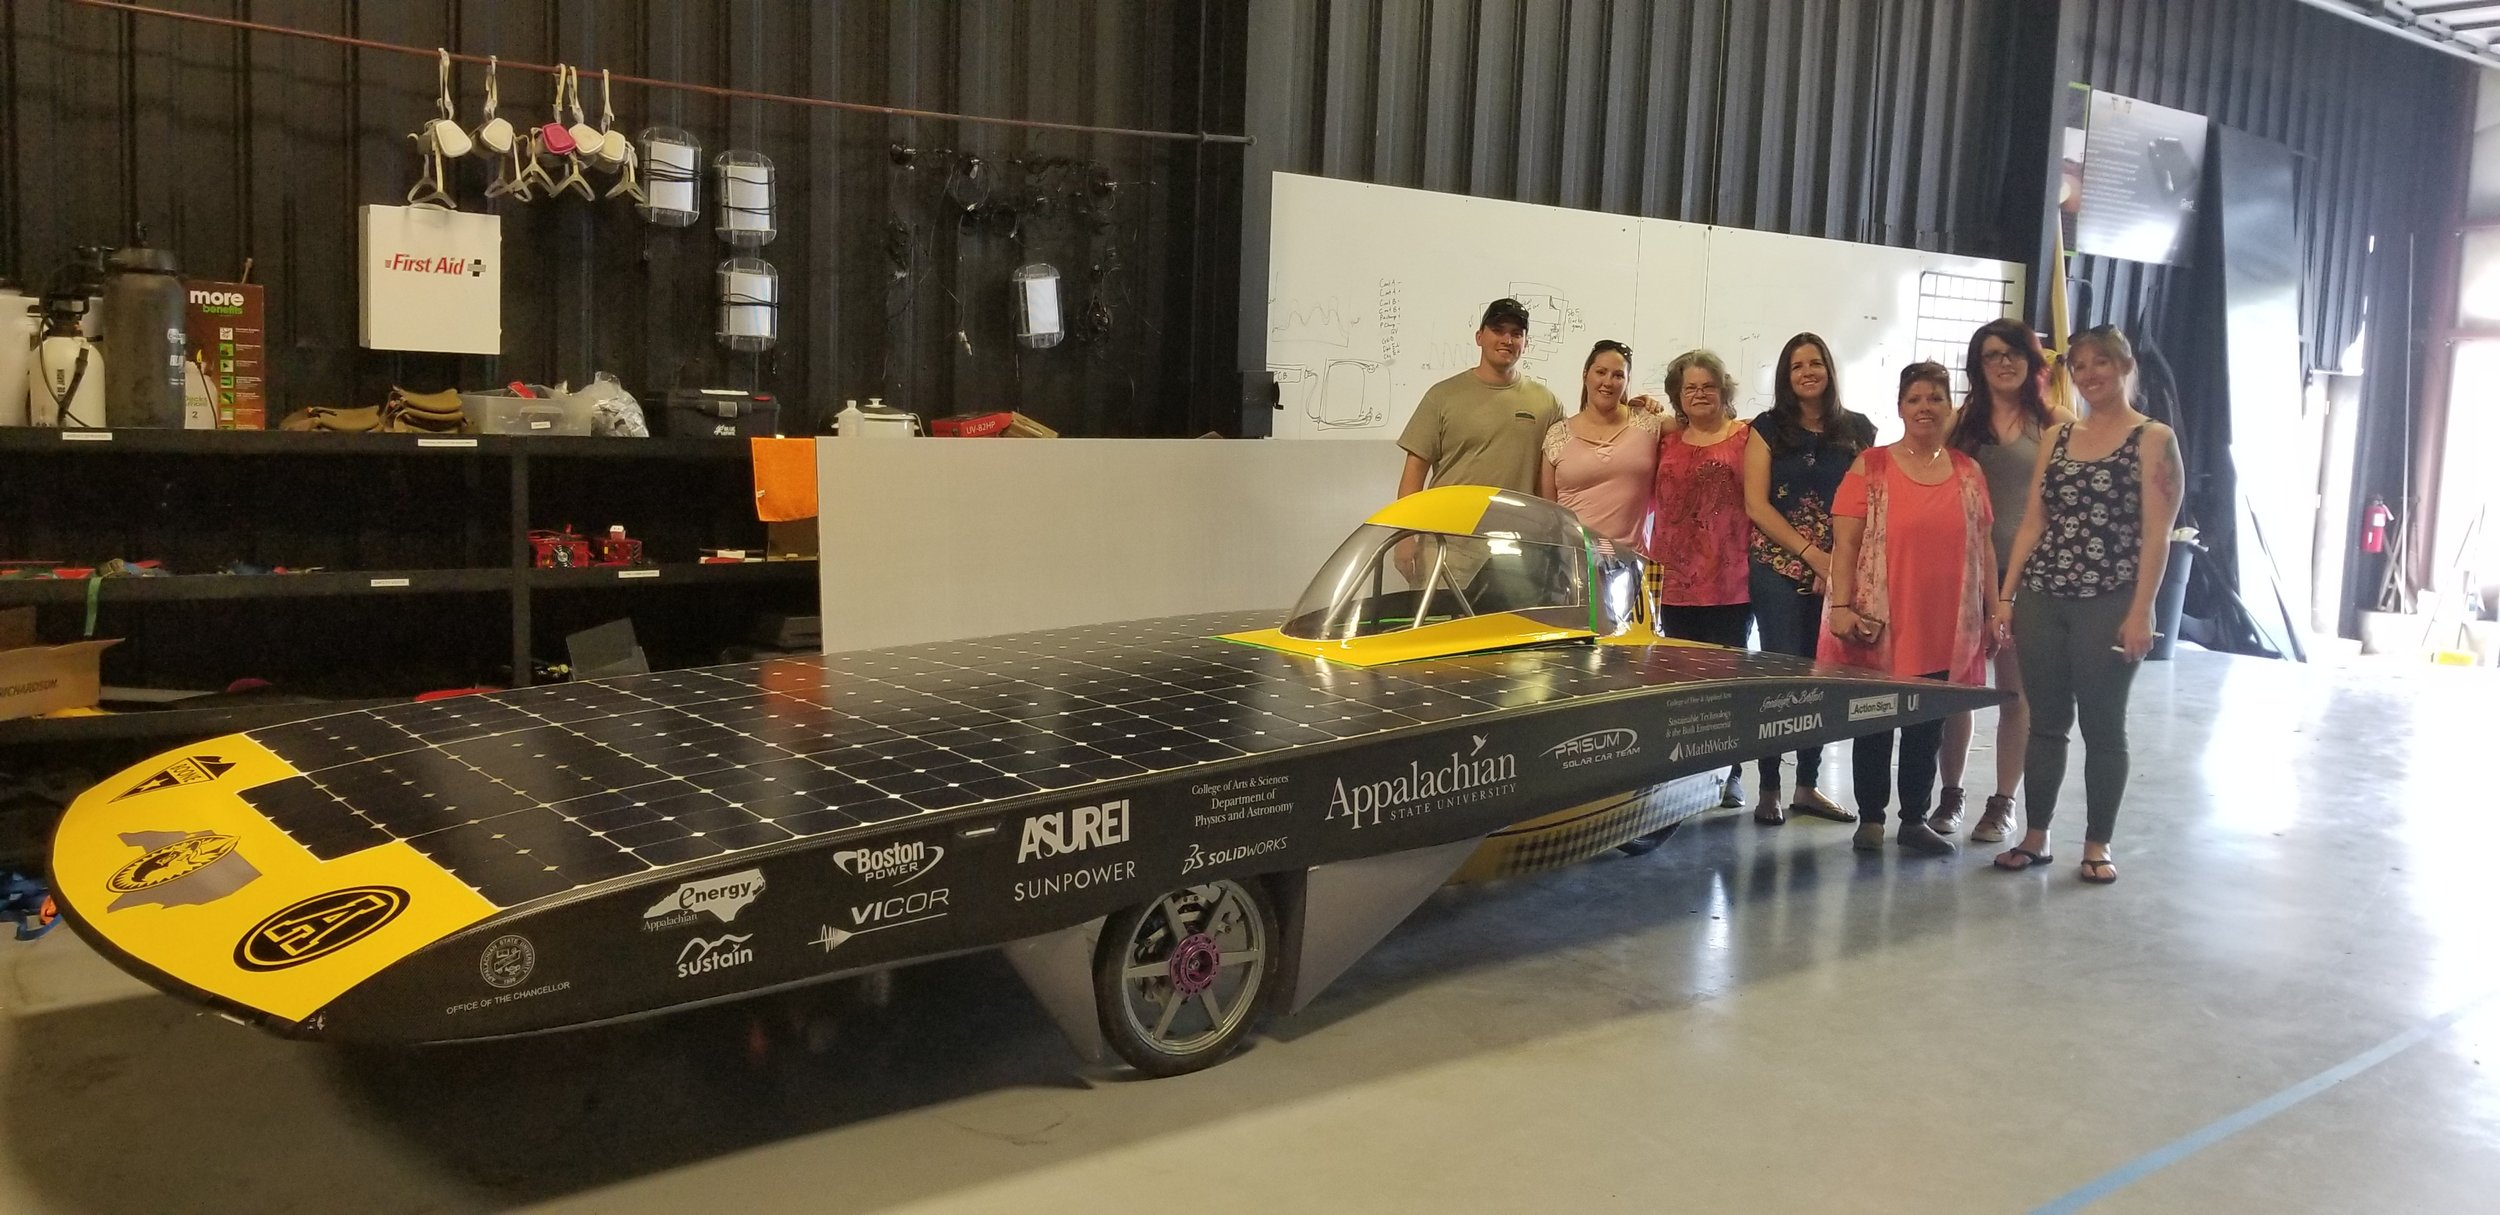 Sunergy Retired Solar Vehicle and my family